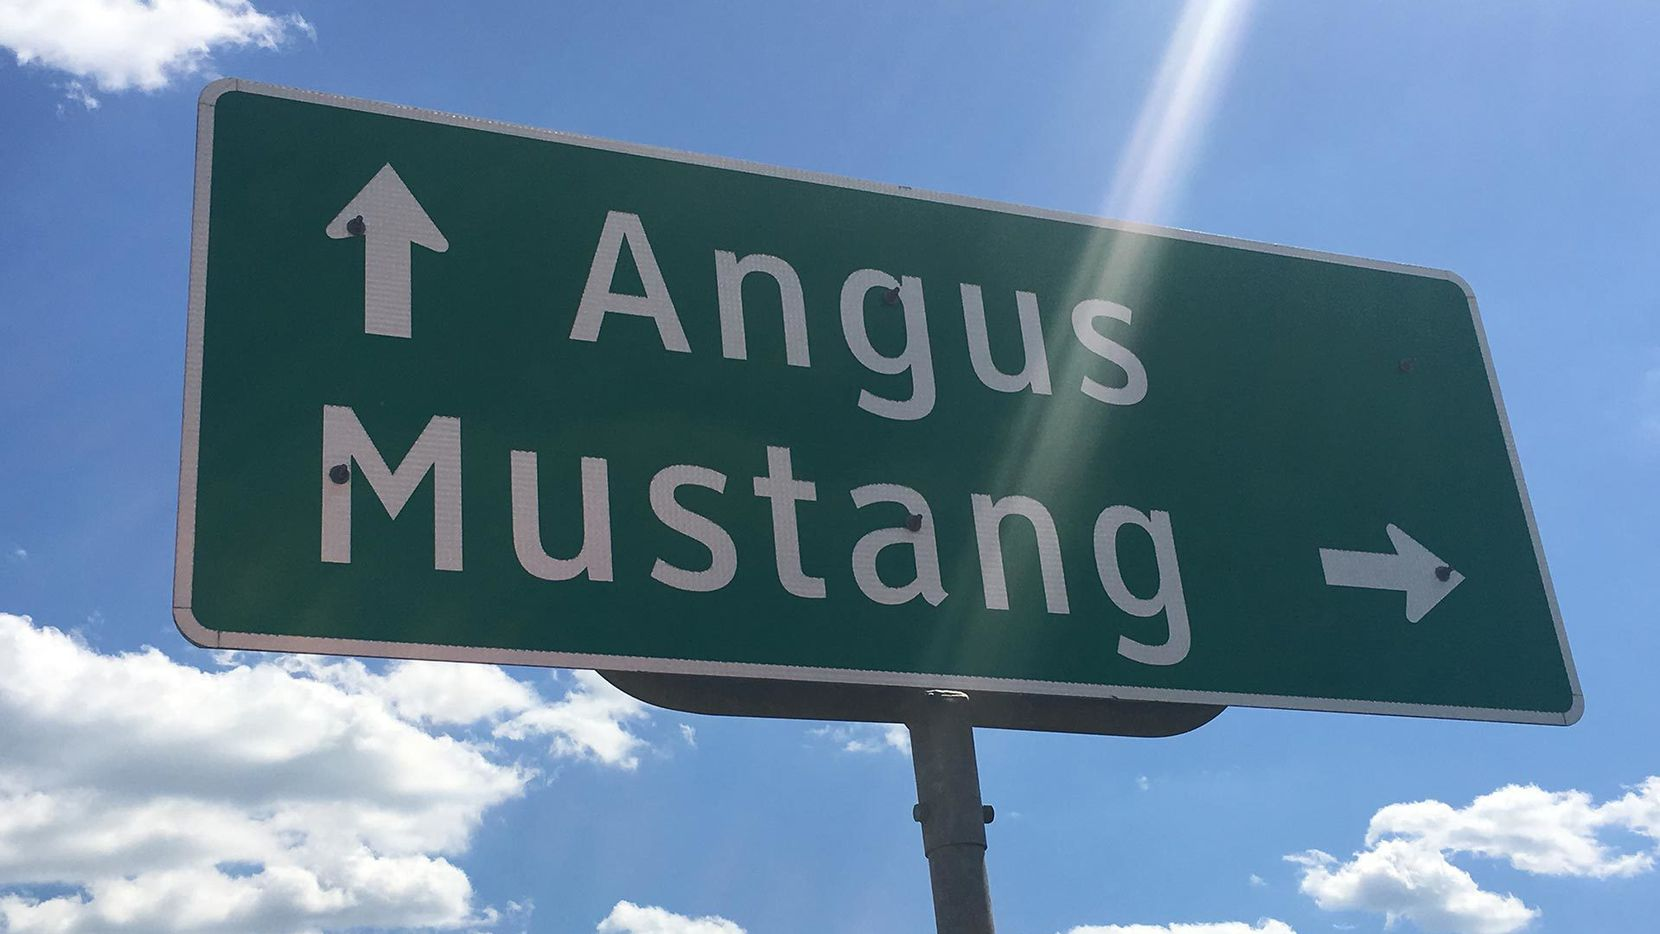 The town of Mustang that's for sale is 55 miles south of Dallas near Corsicana.